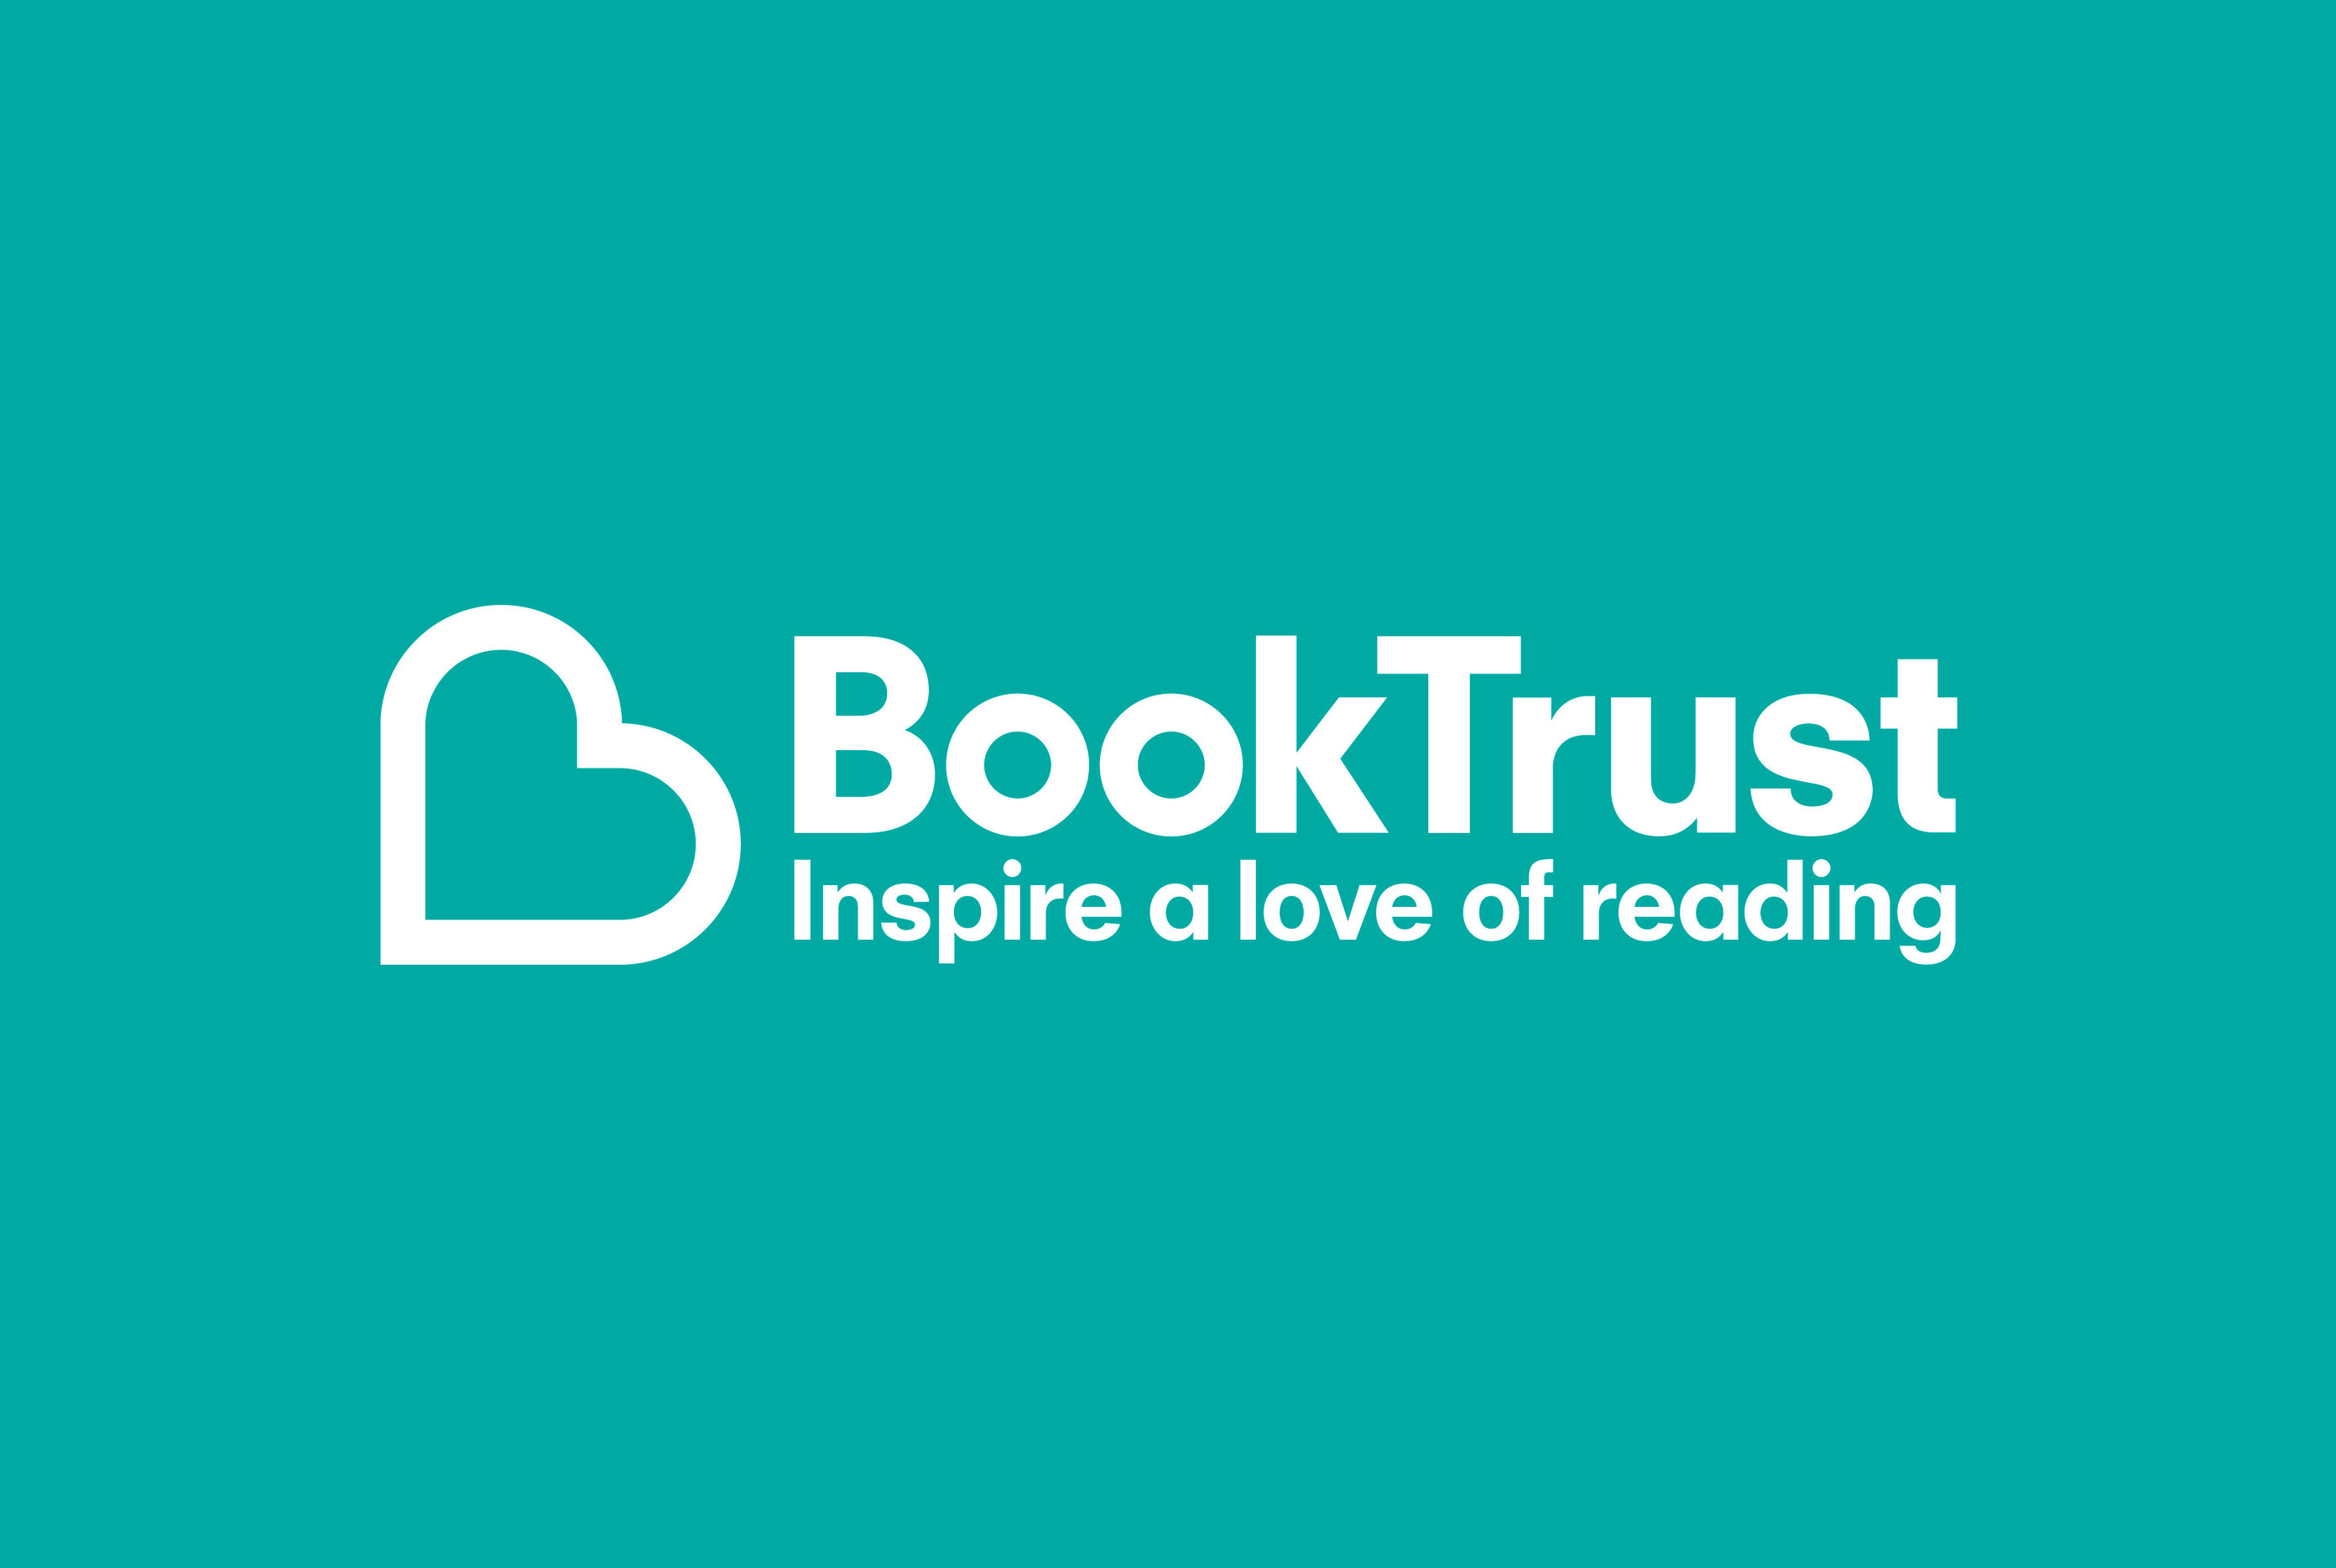 Book Trust Brand Large-image 1400x940